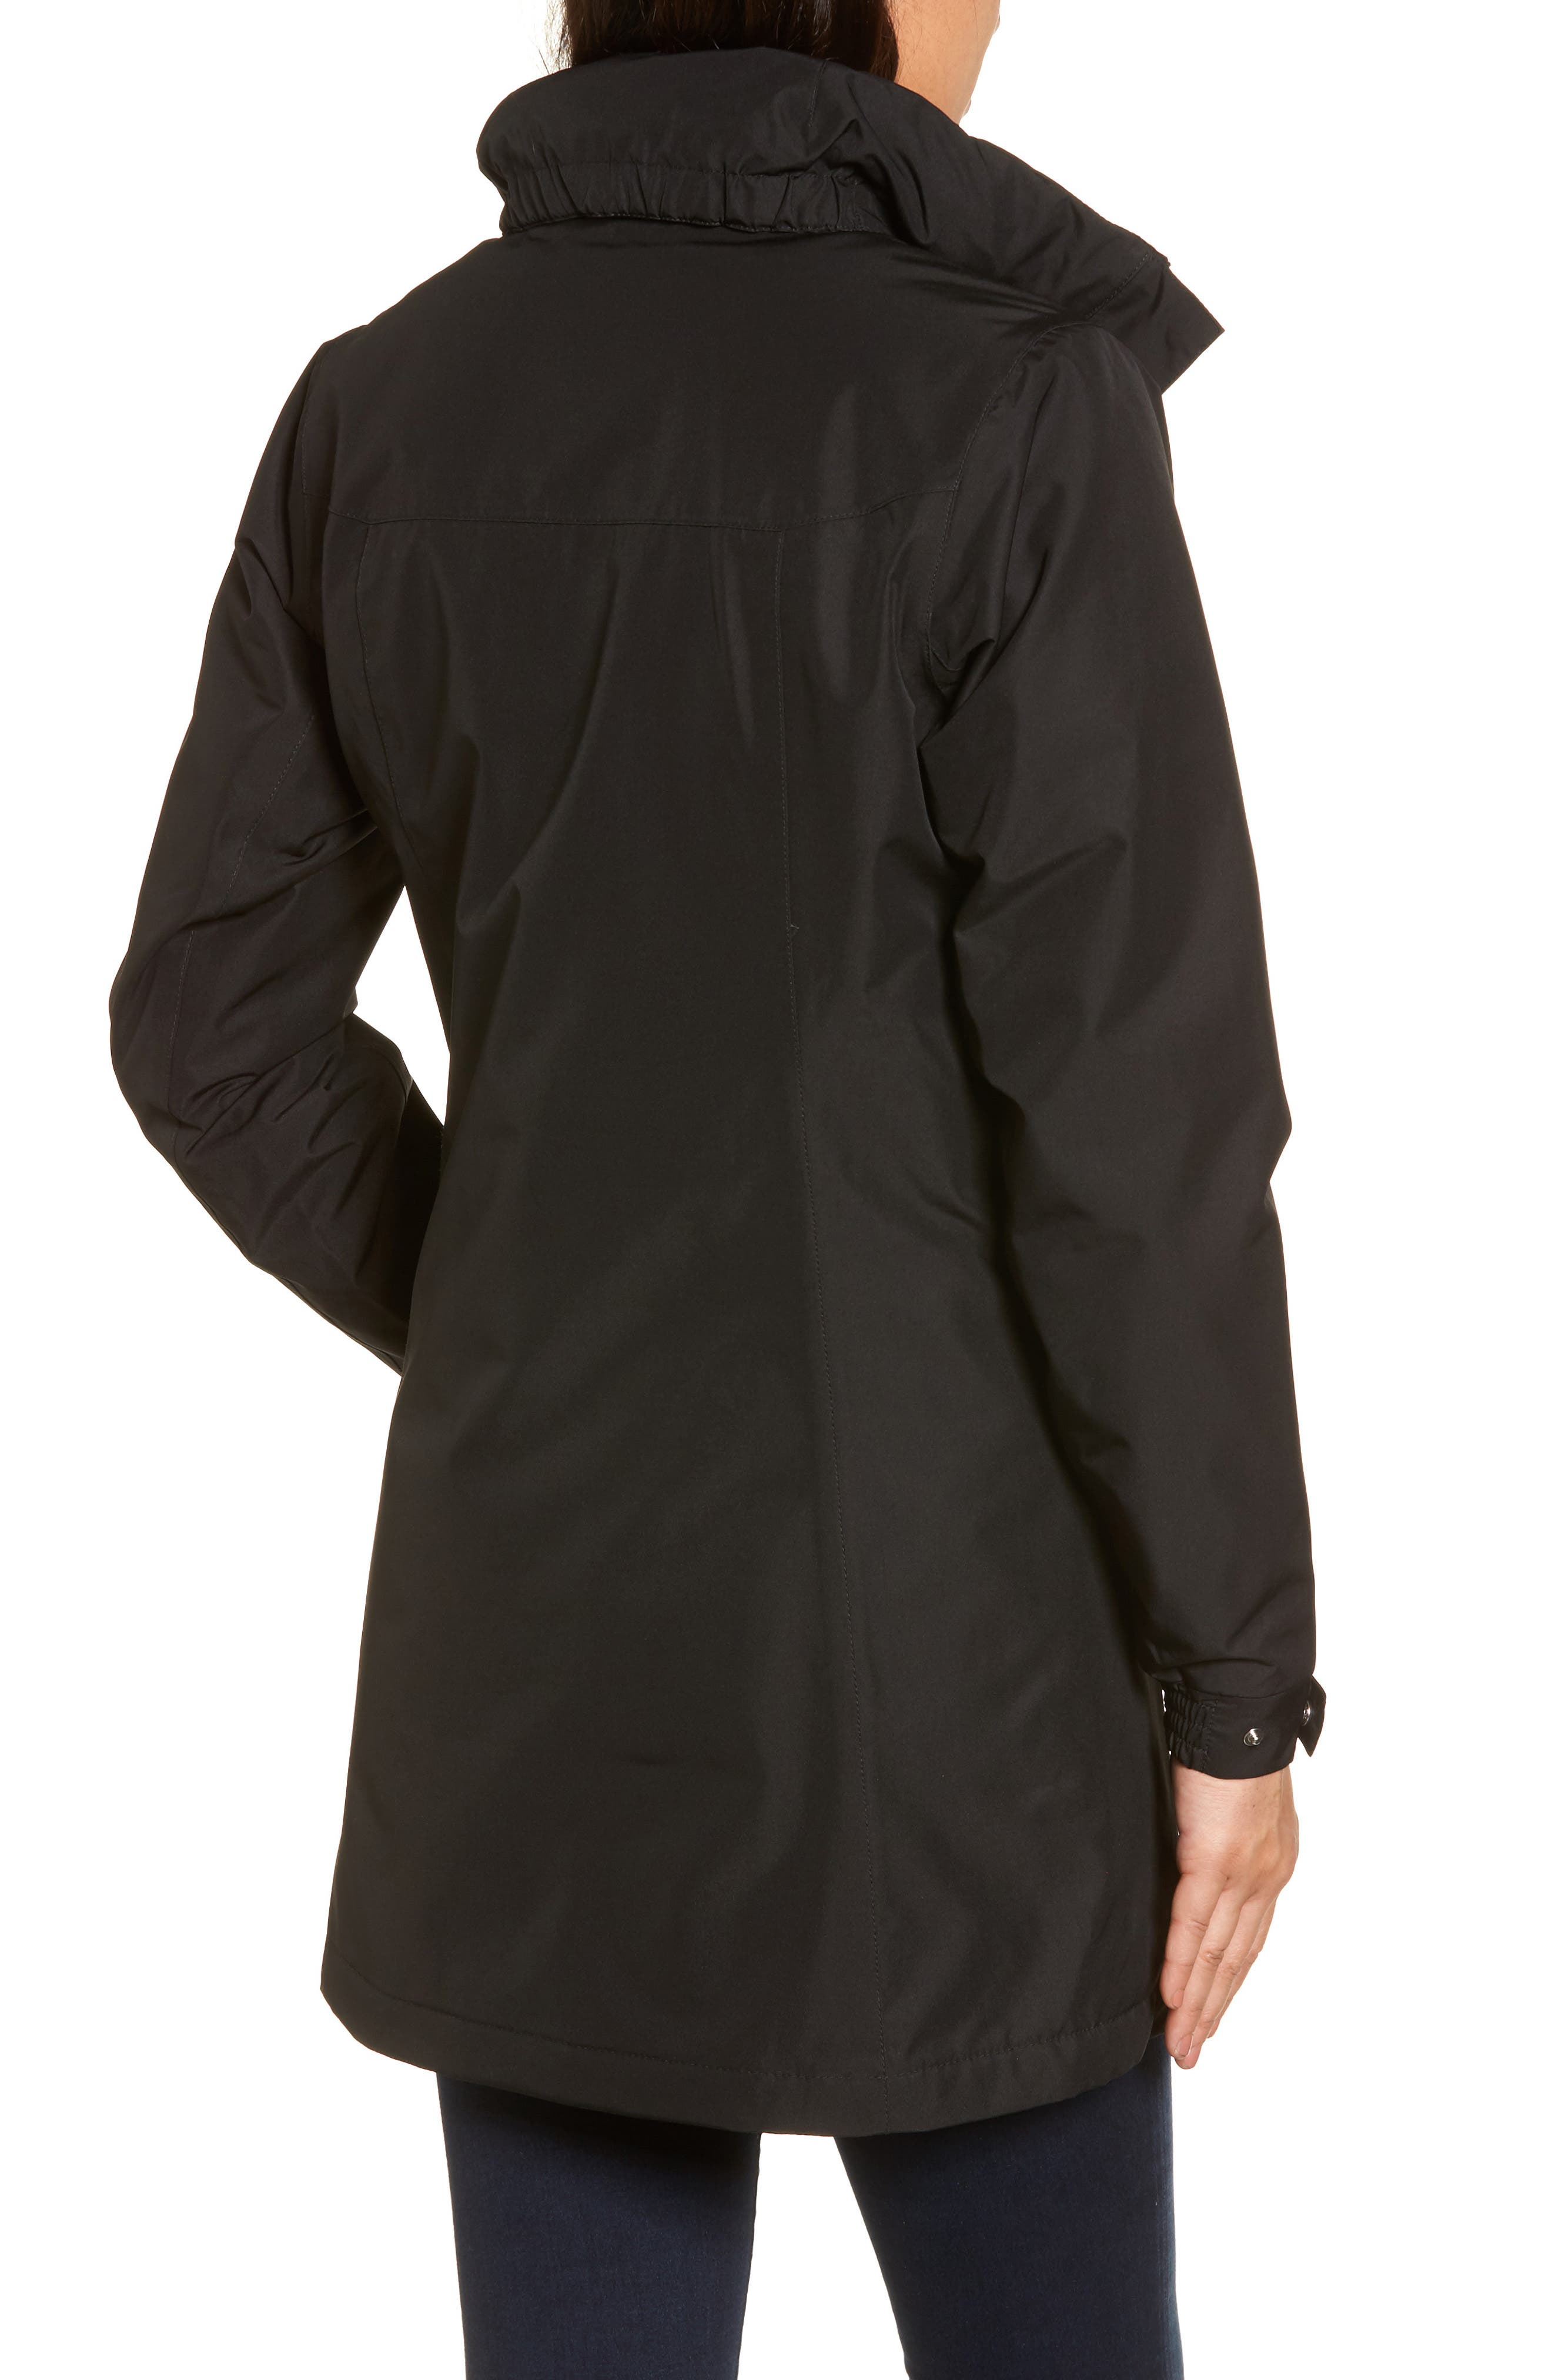 Aden Hooded Insulated Rain Jacket,                             Alternate thumbnail 2, color,                             Black